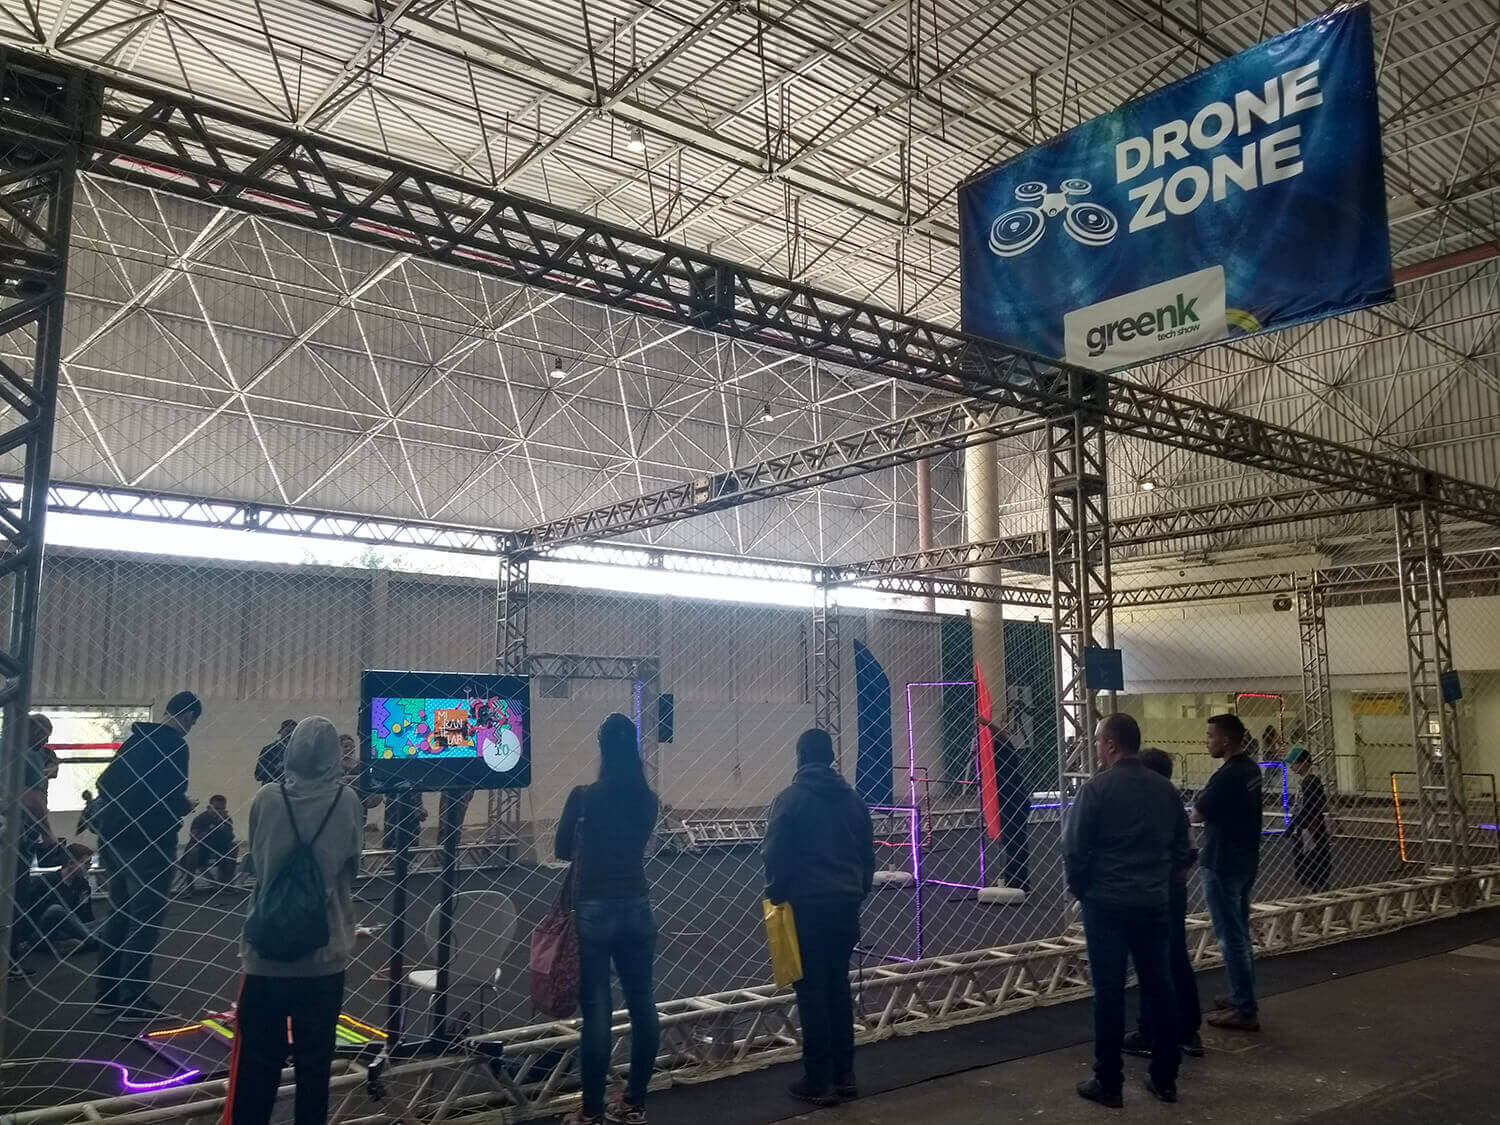 Drone Zone - Greenk 2018